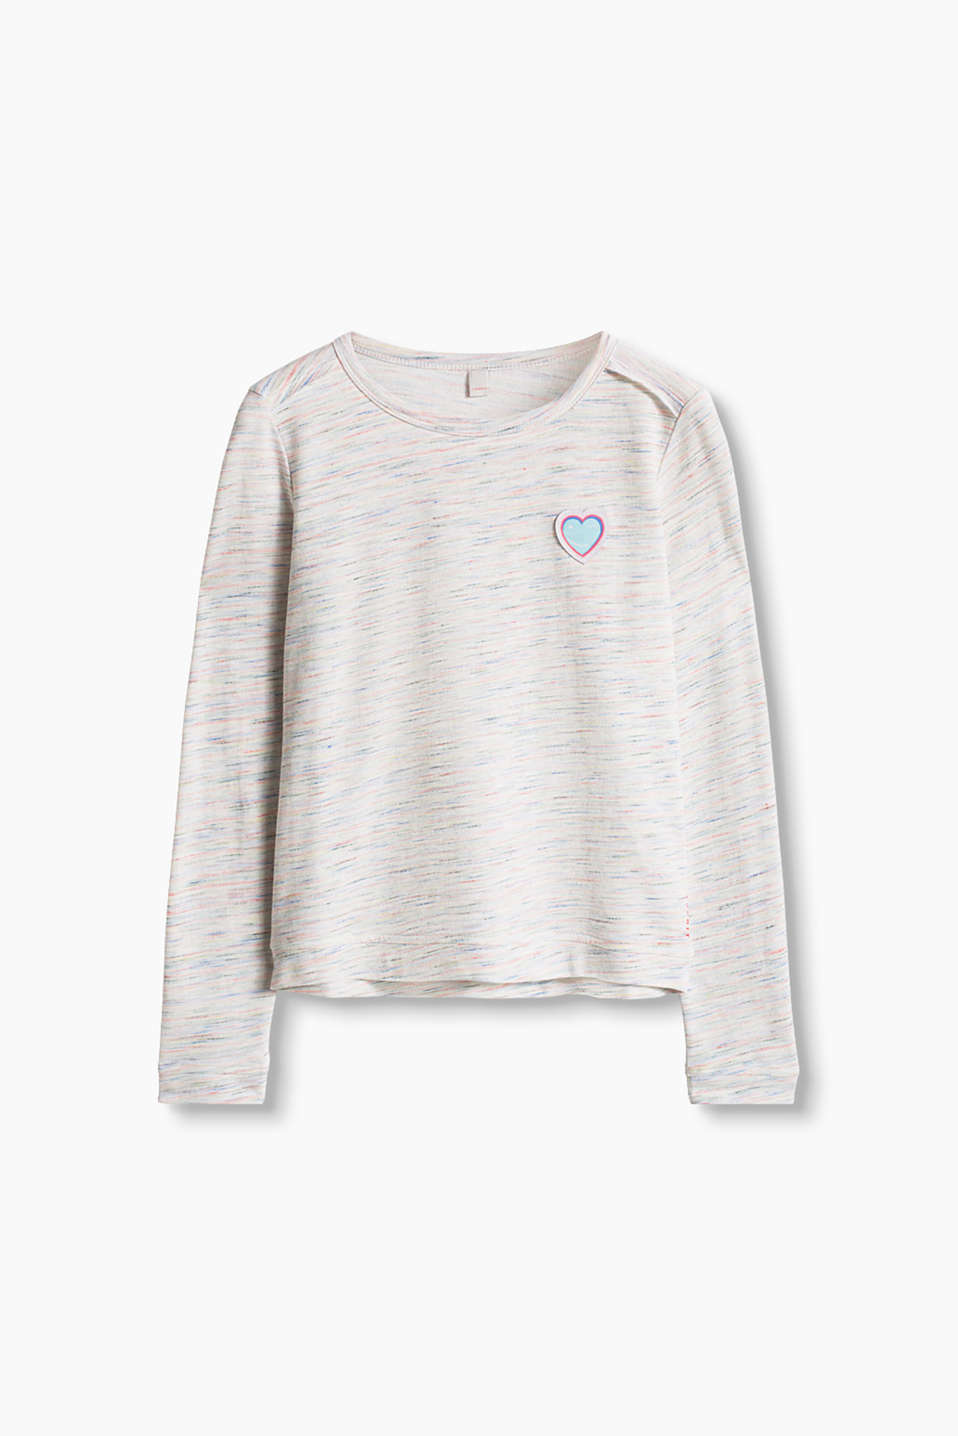 Lightweight sweatshirt in soft cotton with colourful stripes and a pretty heart appliqué